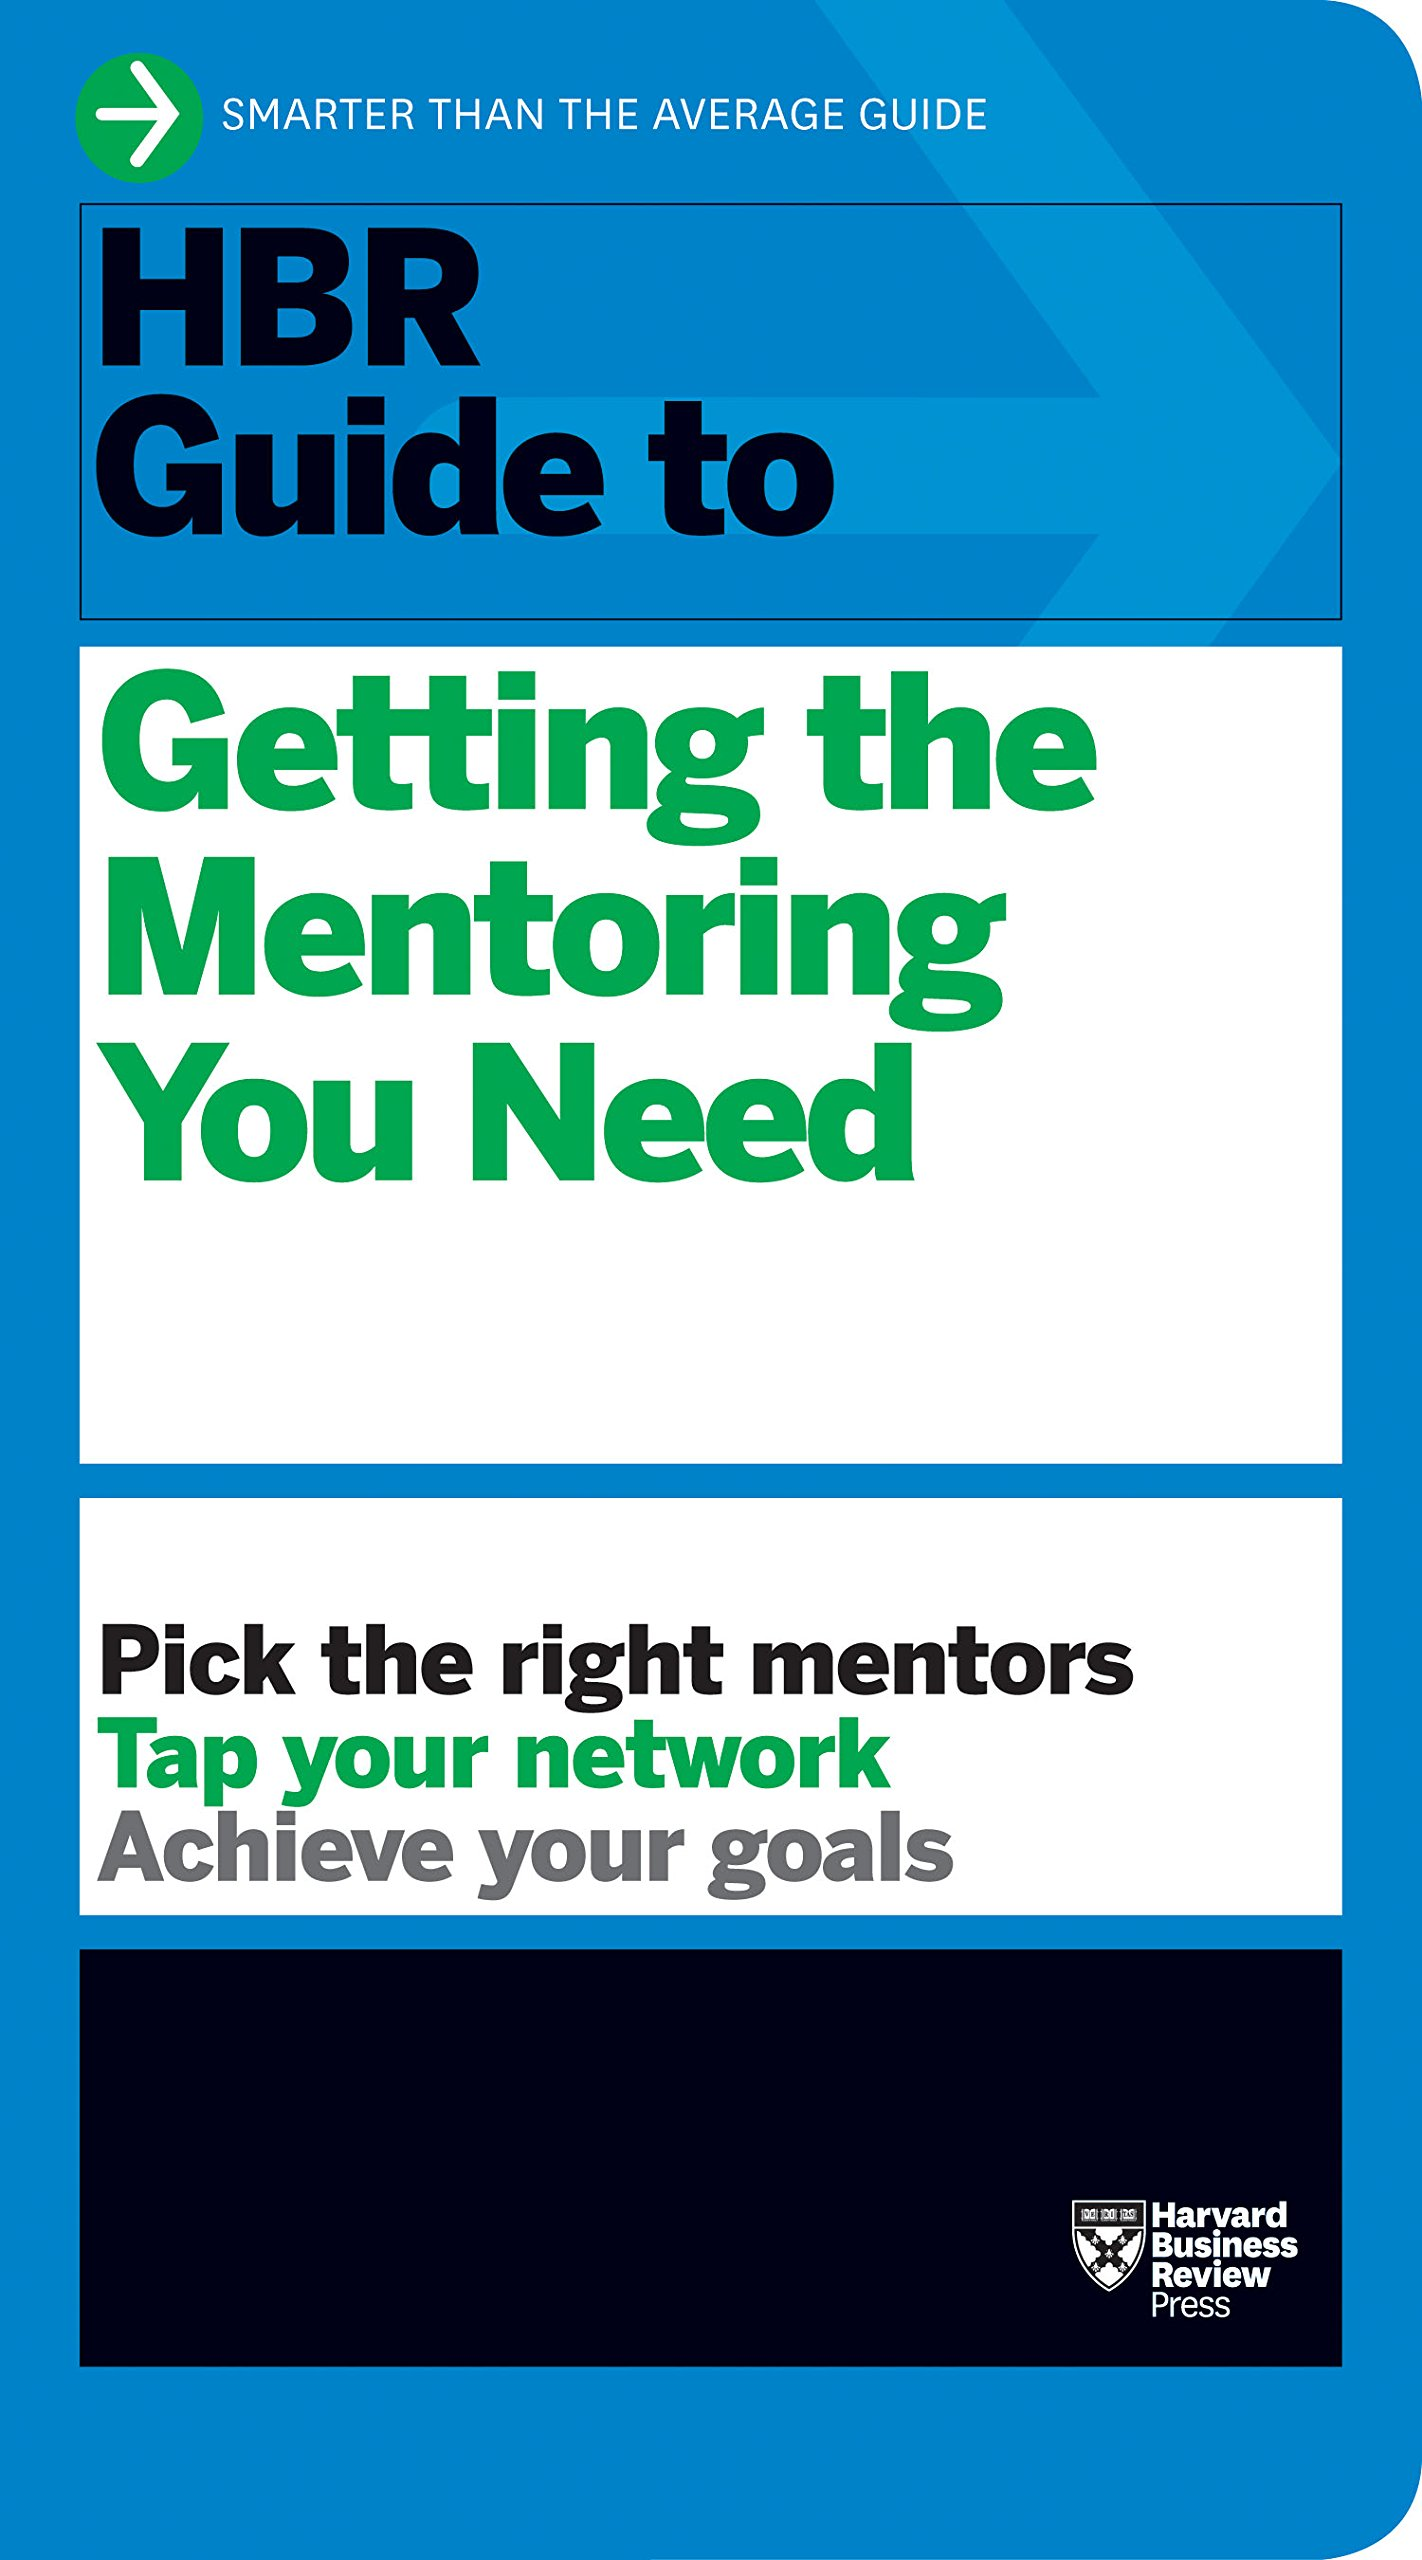 Amazon.com: HBR Guide to Getting the Mentoring You Need (HBR Guide Series)  (9781422196007): Harvard Business Review: Books